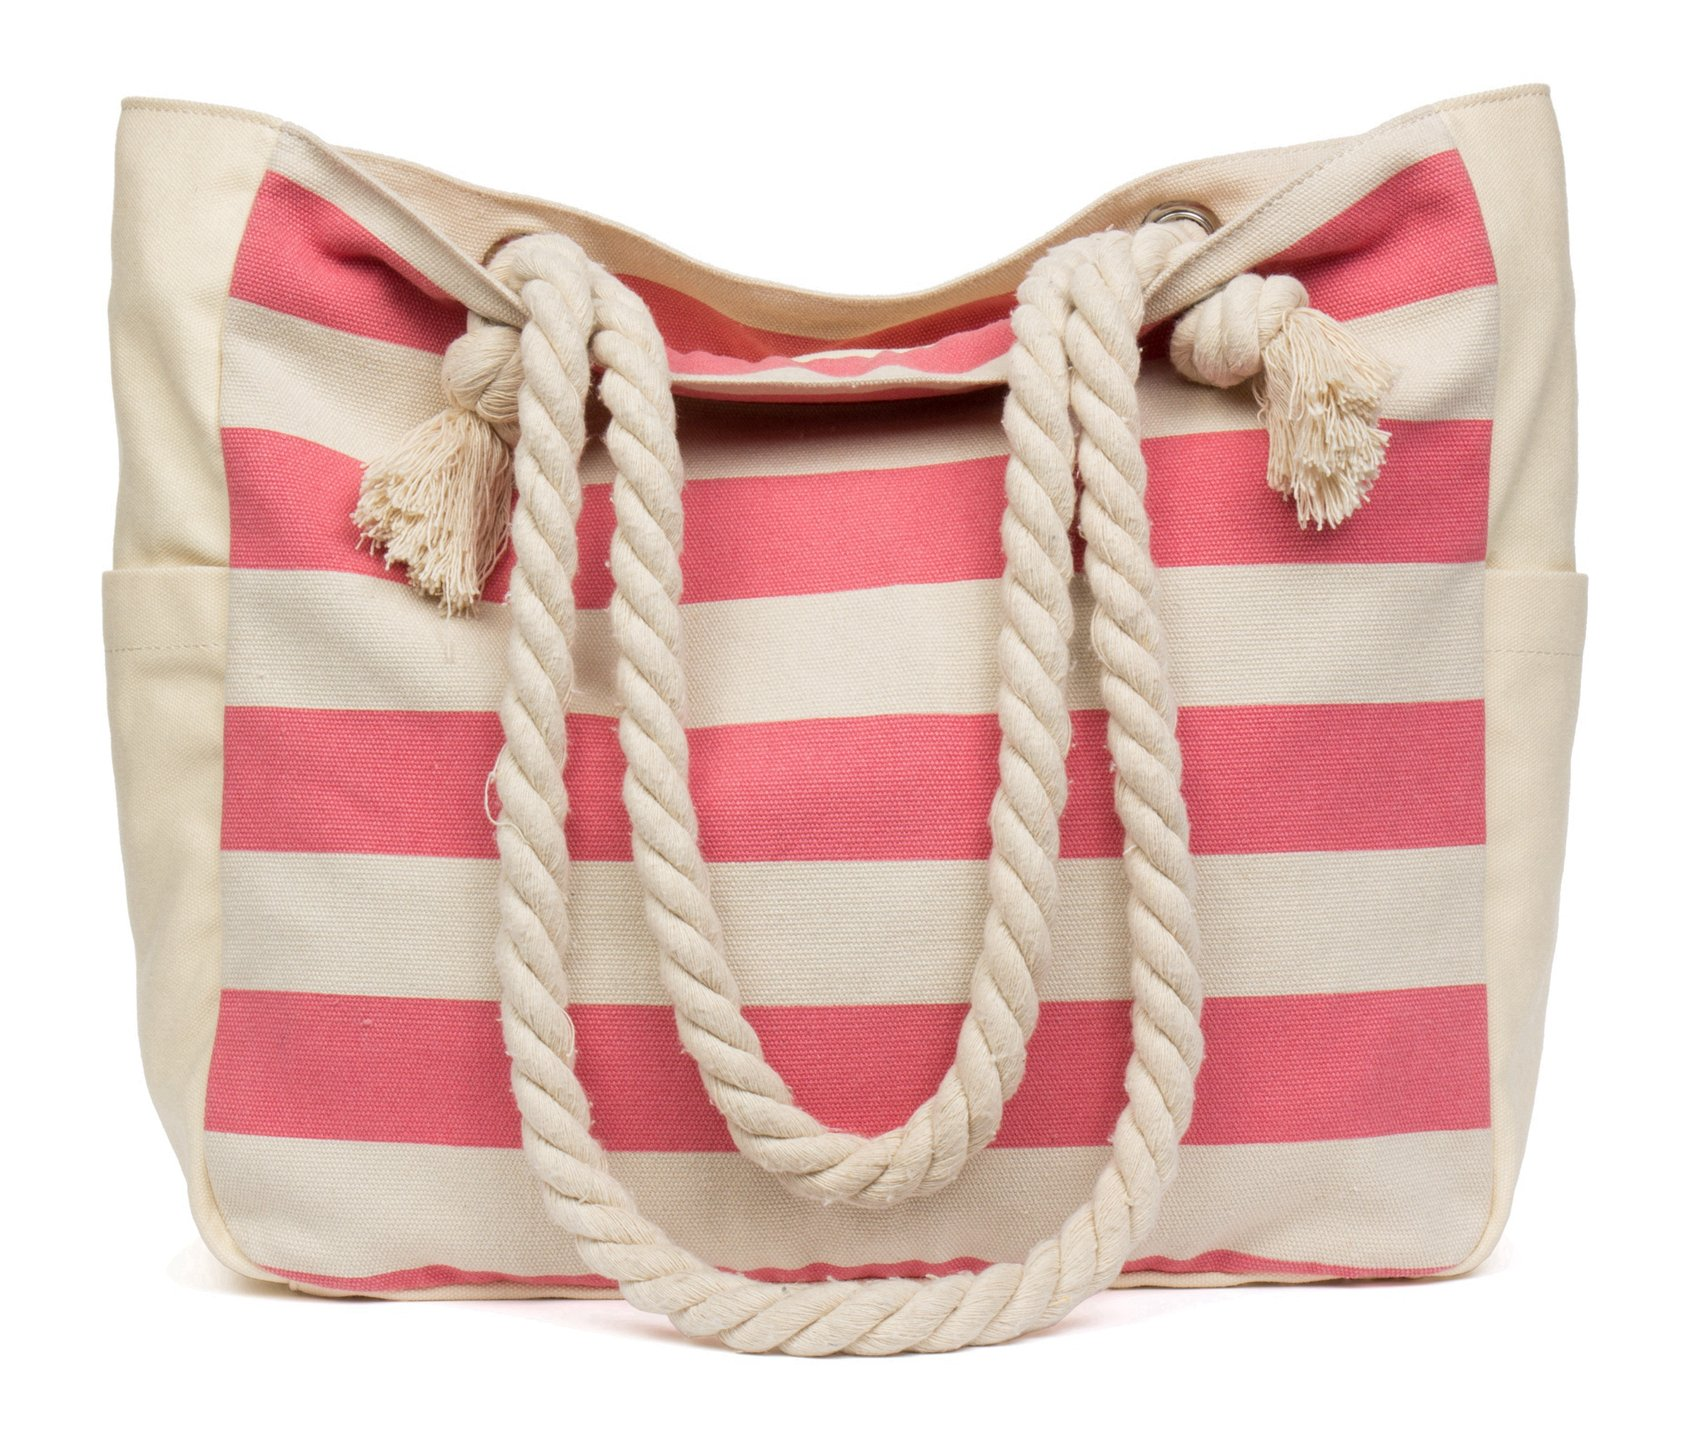 Malirona Beach Canvas Travel Tote Bag (Pink Stripes)